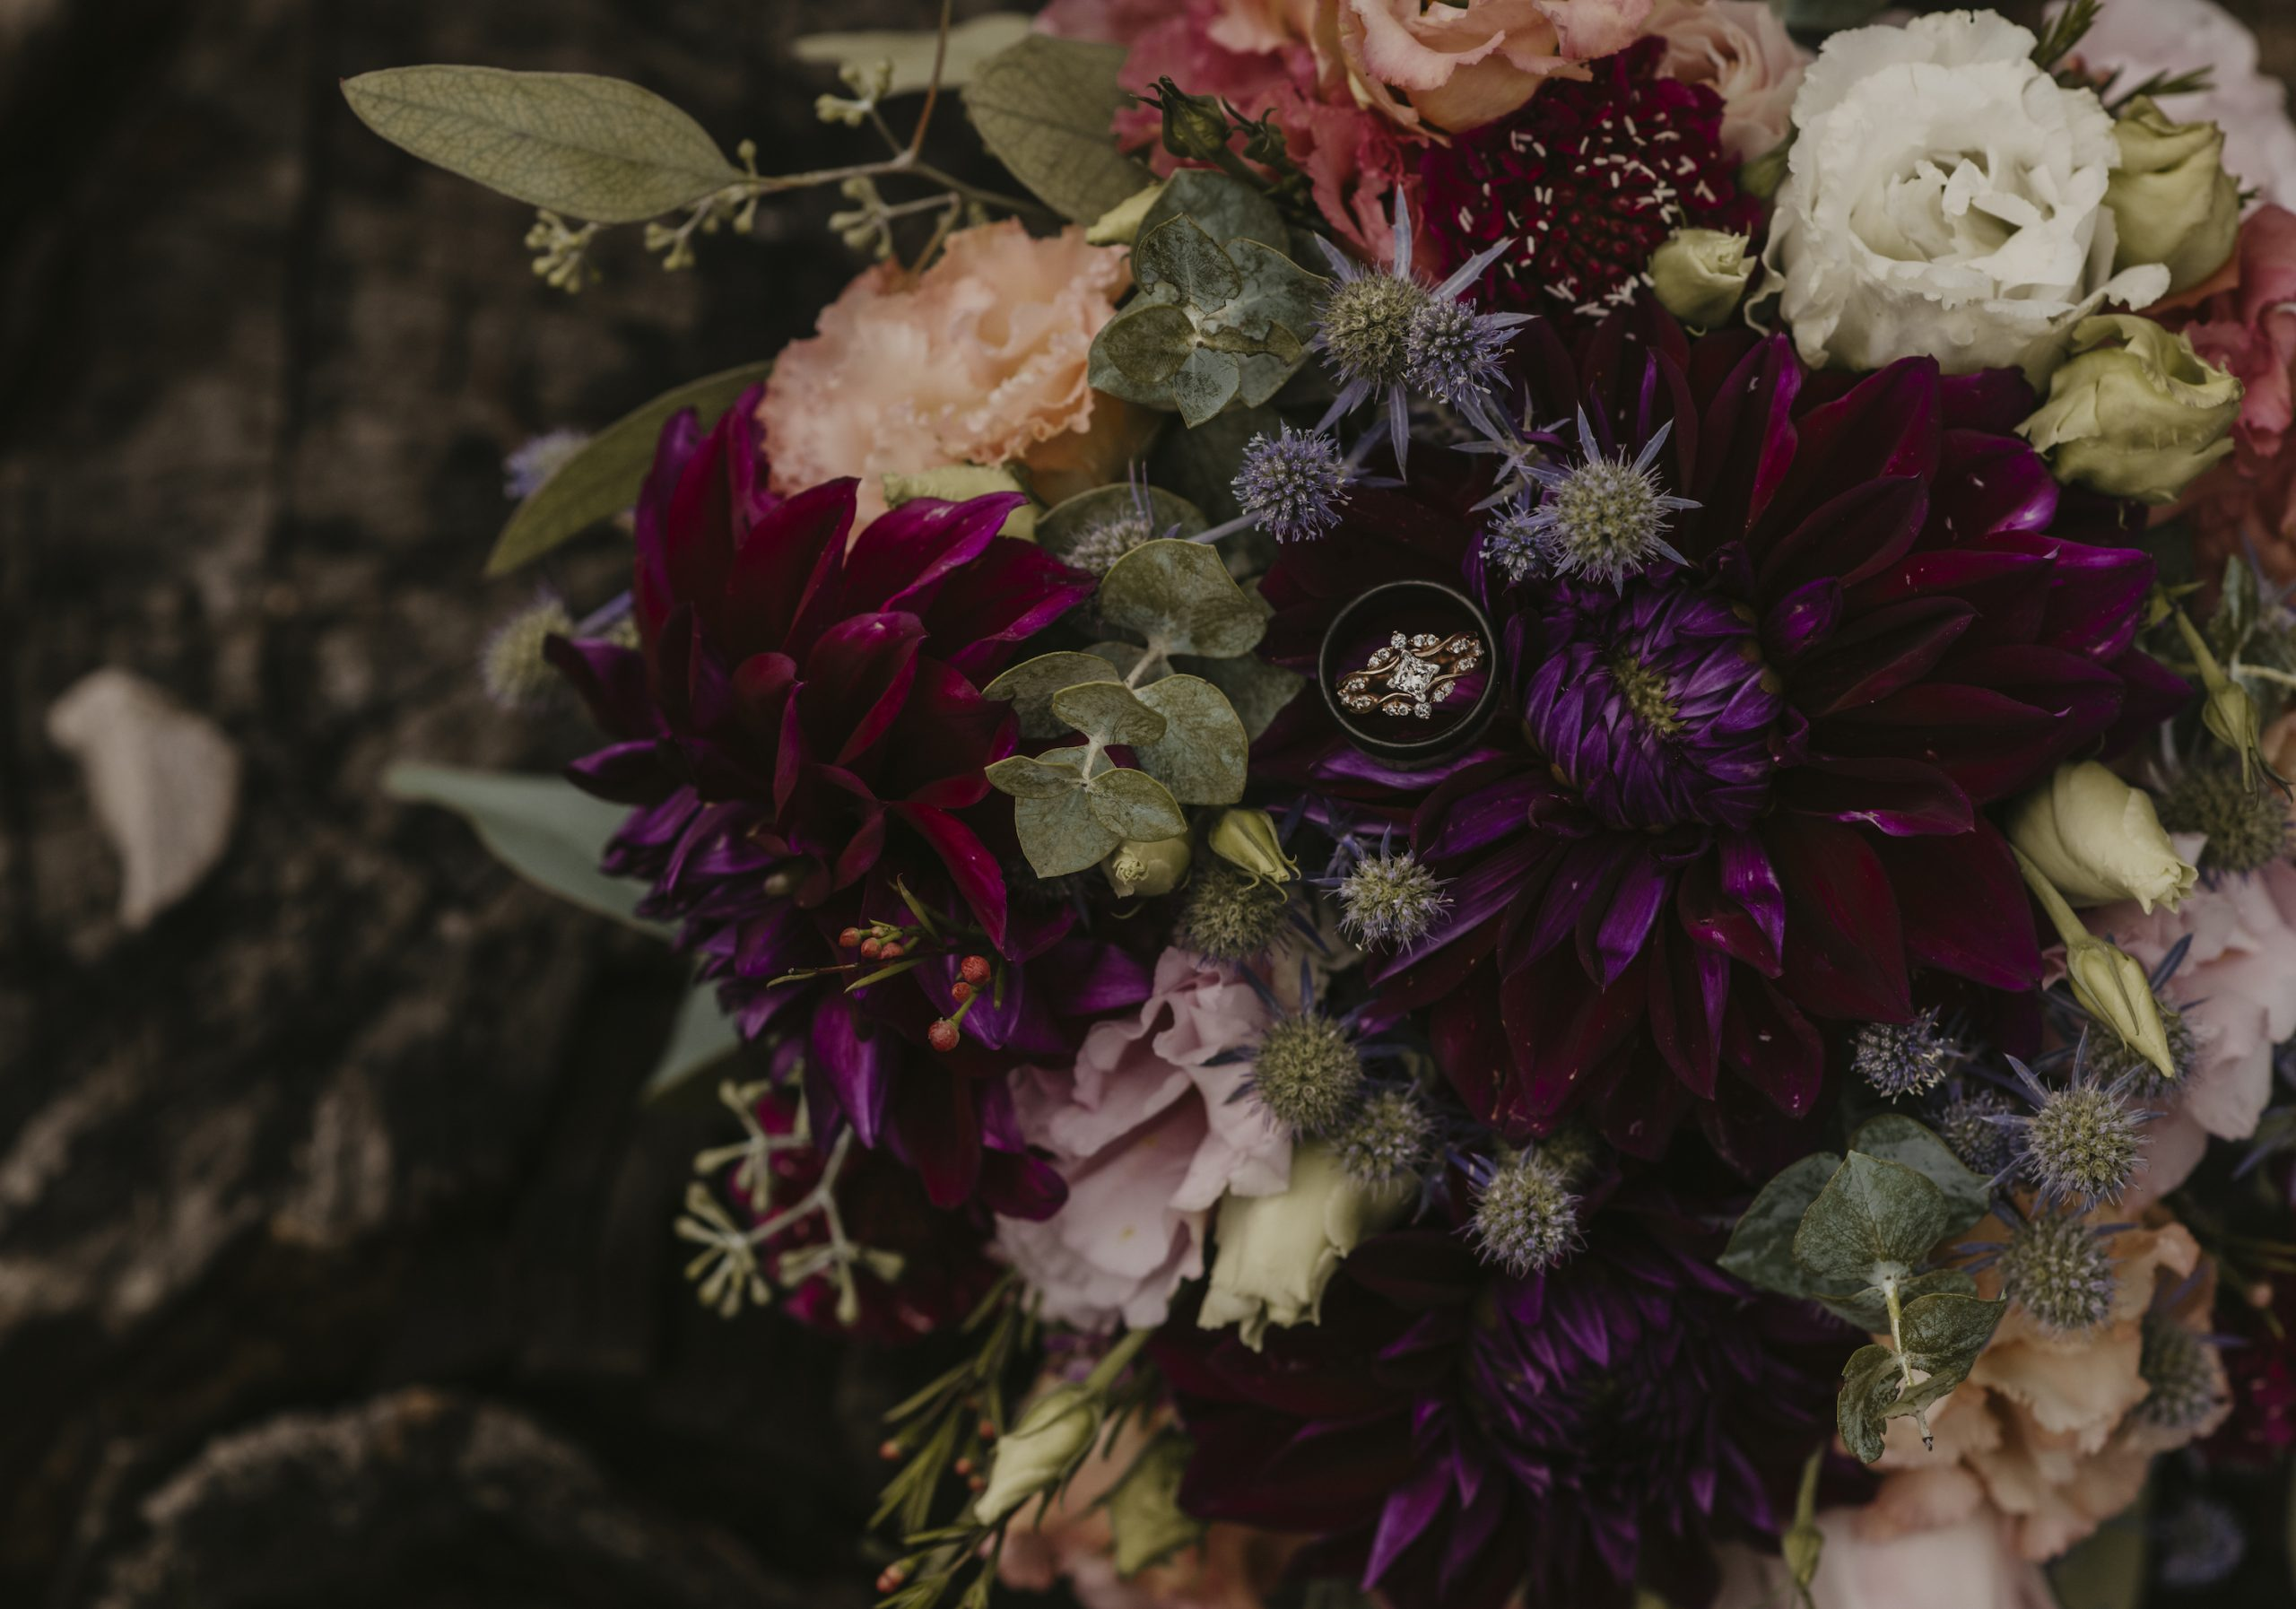 Alpenglow Growers   Wedding Florist in Montrose, Colorado featured on WED West Slope - a directory for wedding vendors.